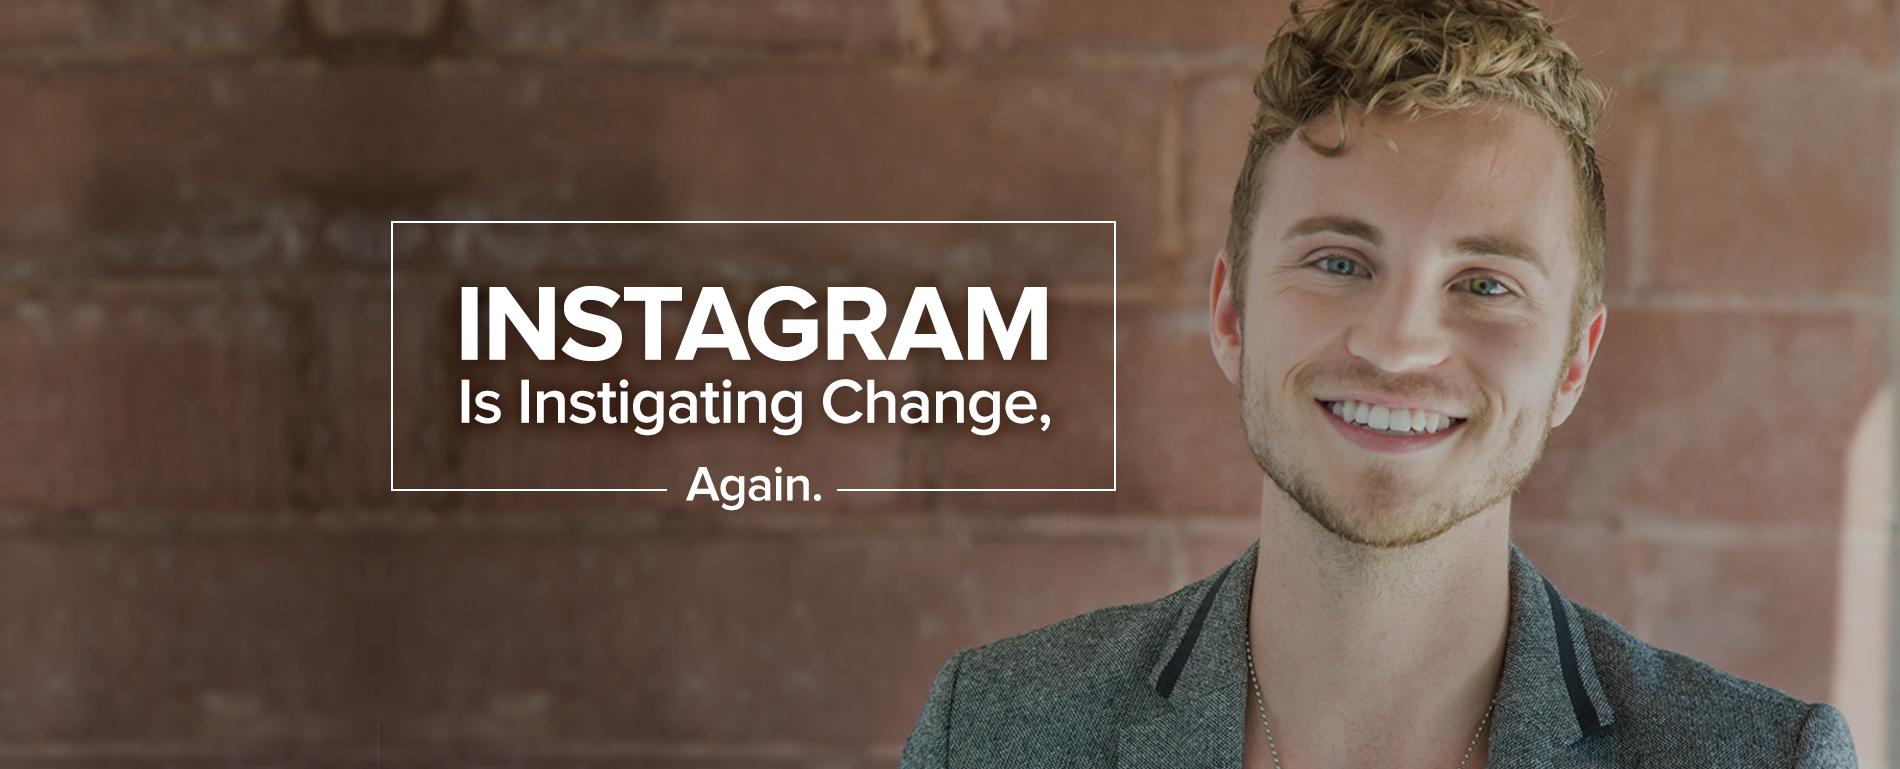 Instagram Is Instigating Change, Again